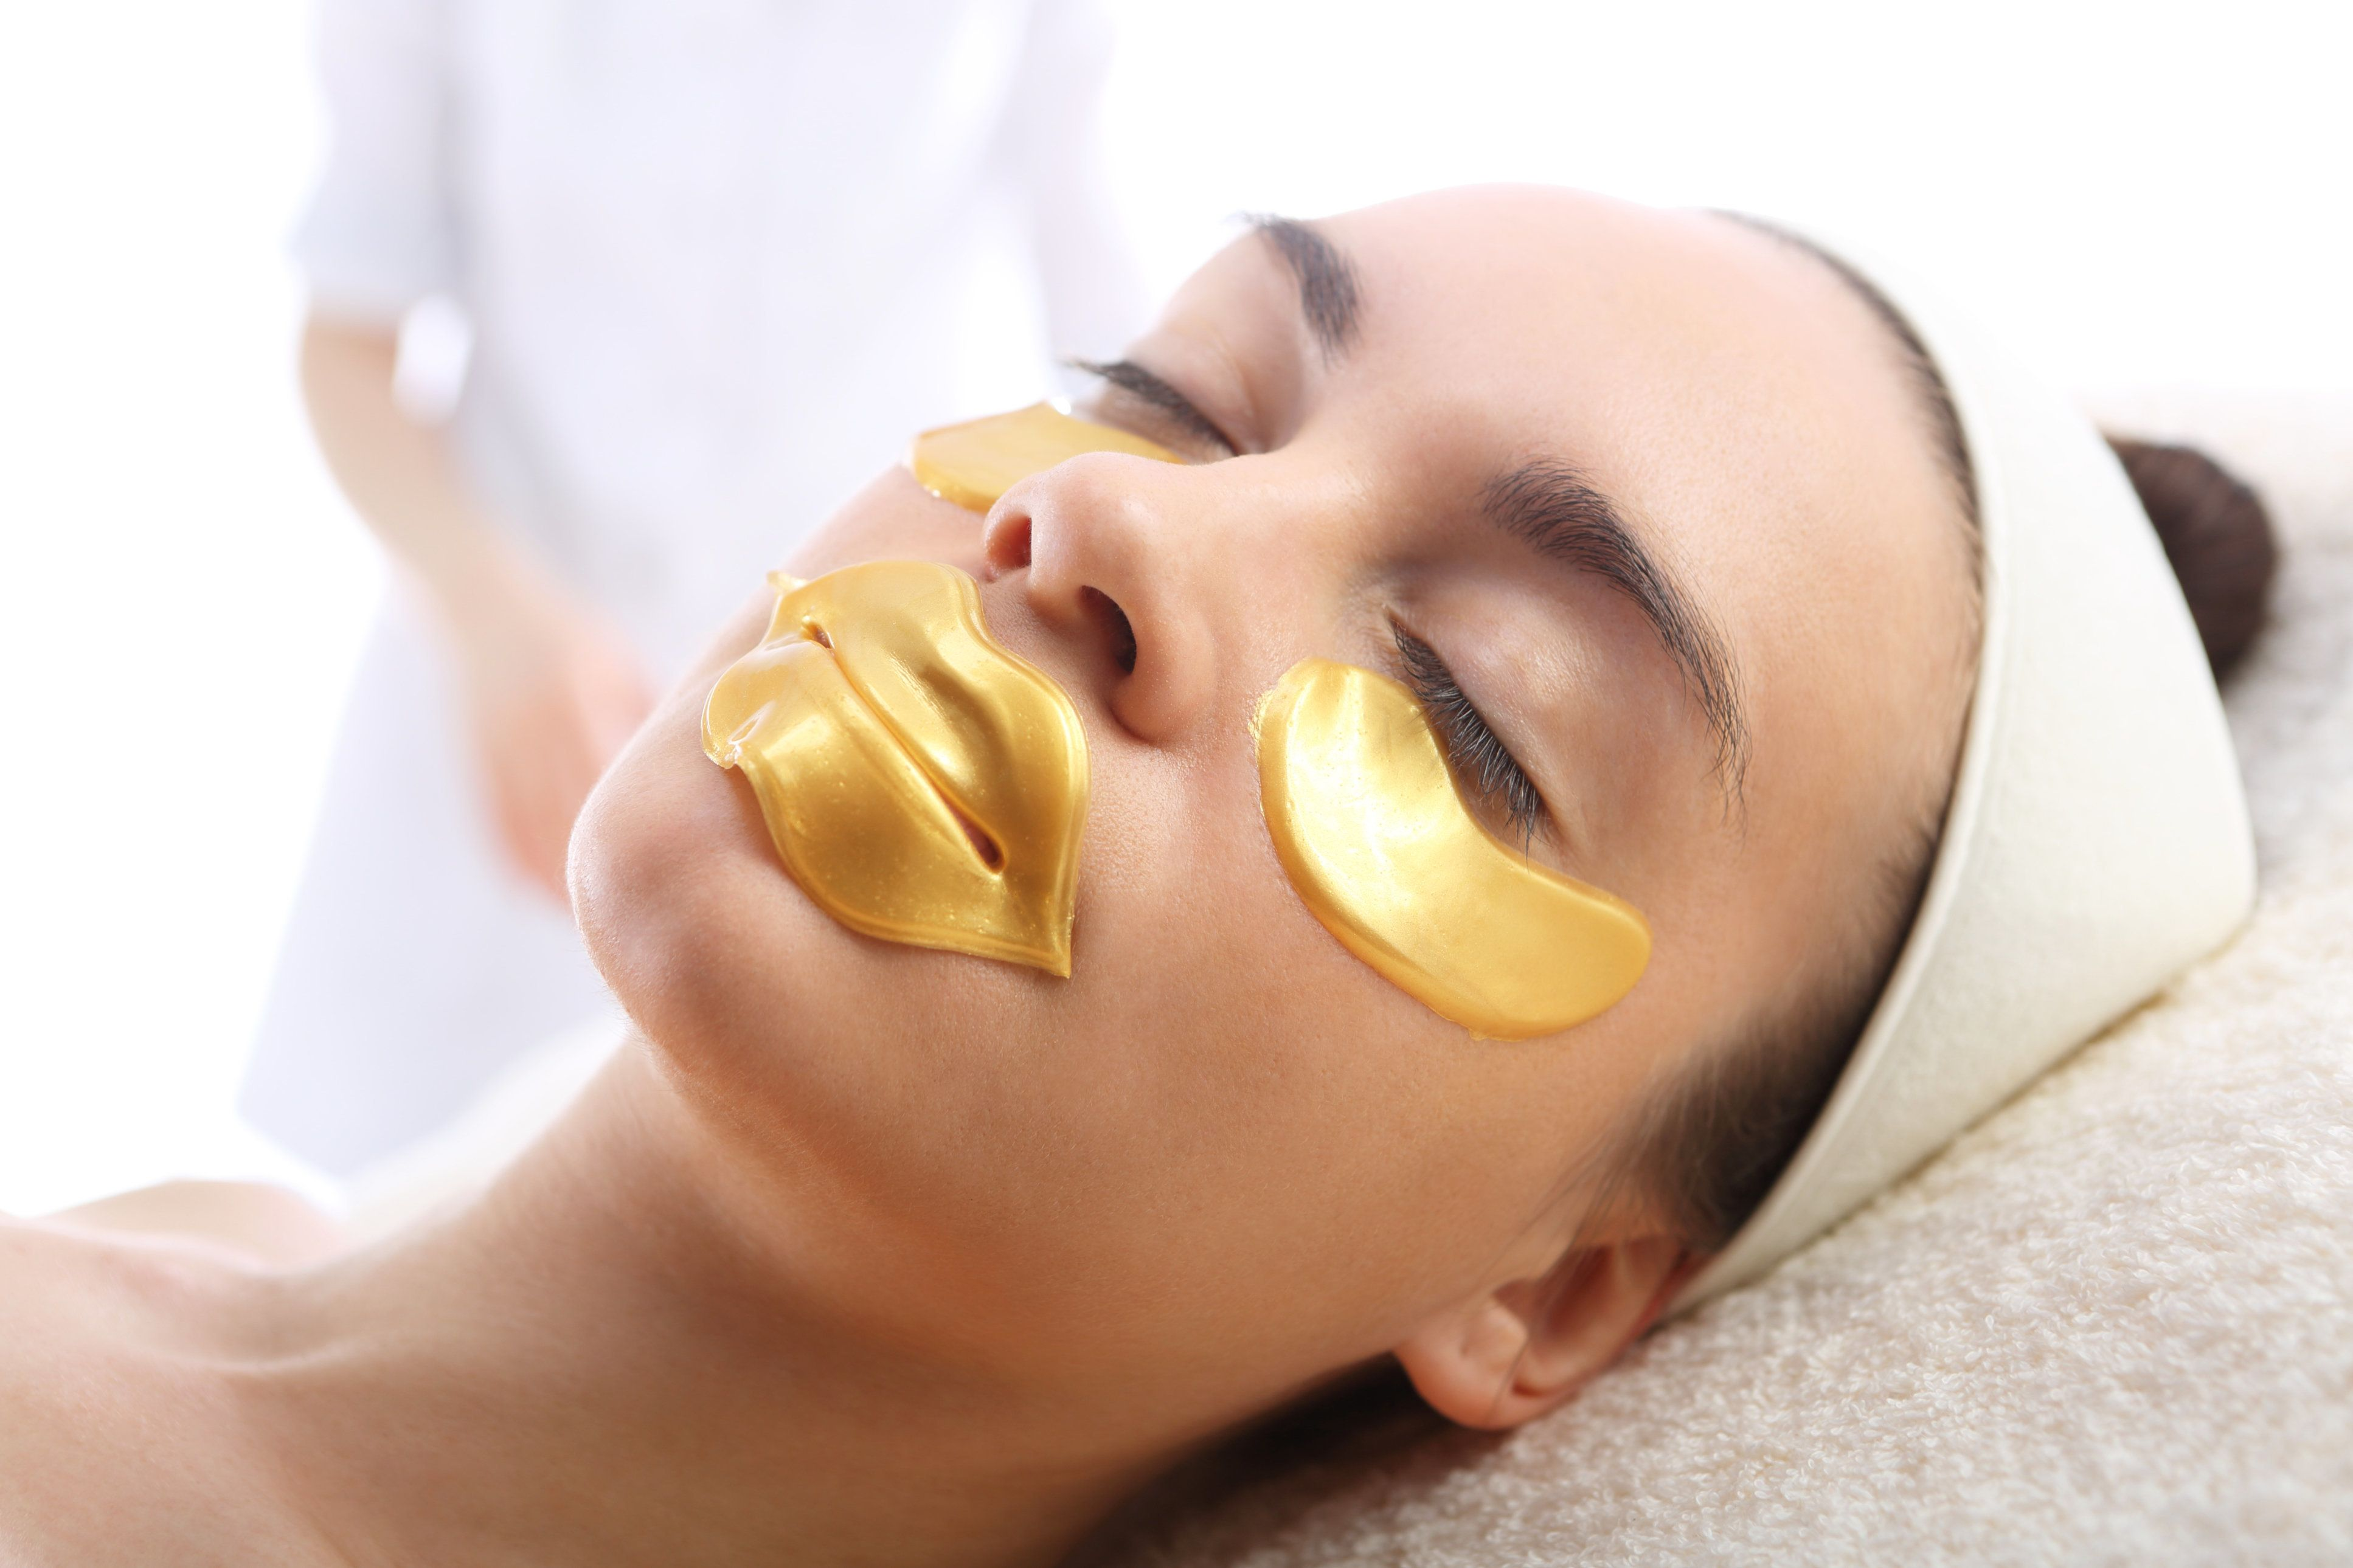 Gold-infused skincare does boast promising skincarebenefits. However, there are other effective antioxidants.